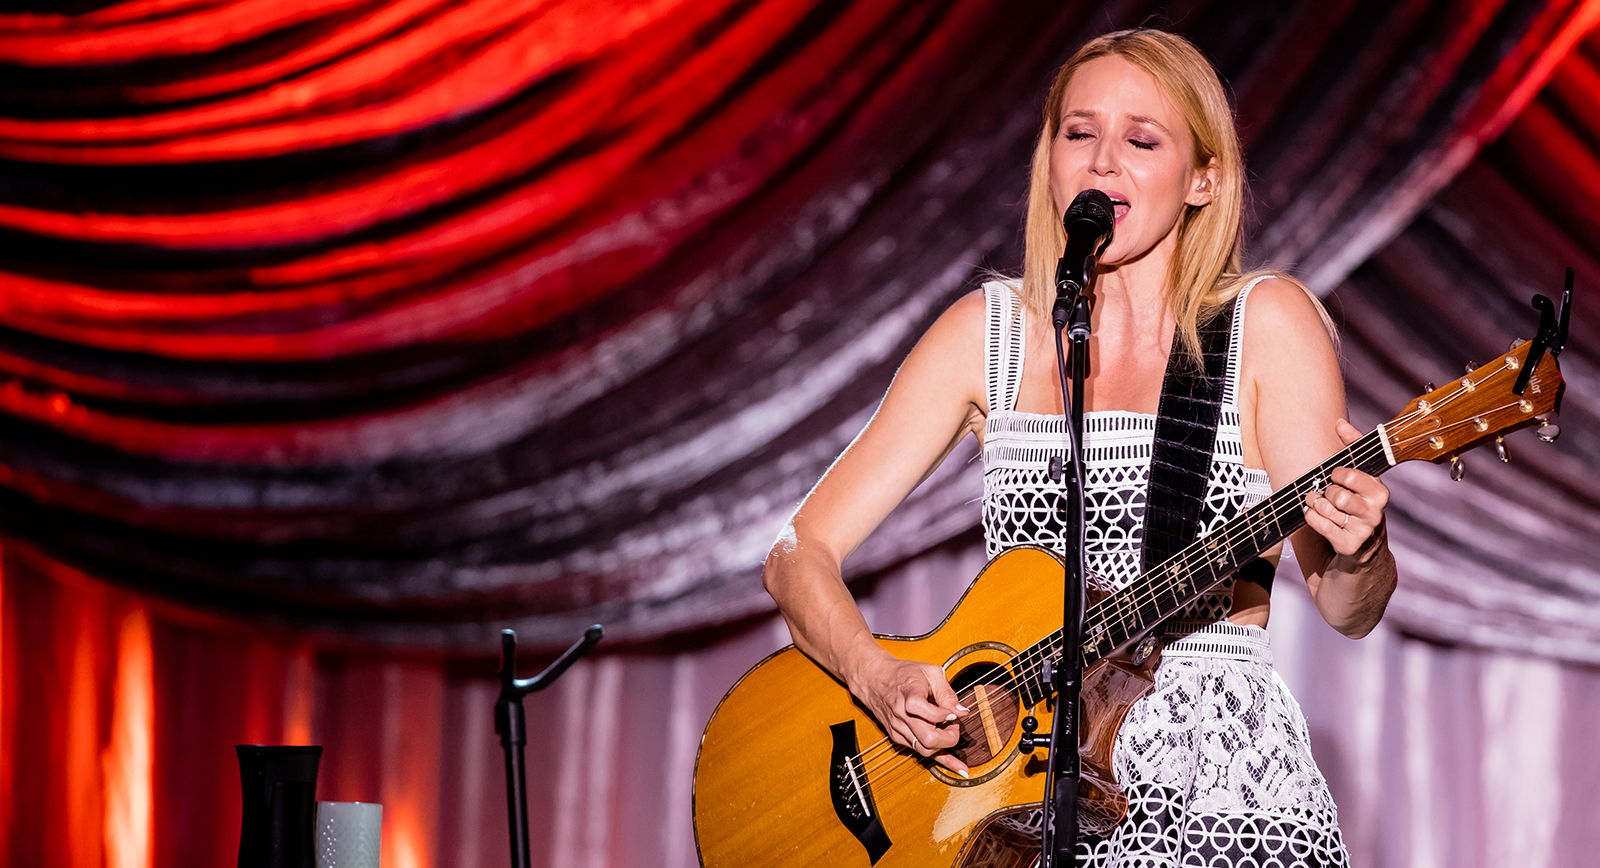 Jewel-Tour-2016-Concert-Review-Photos-Photography-Grass-Valley-California-FI